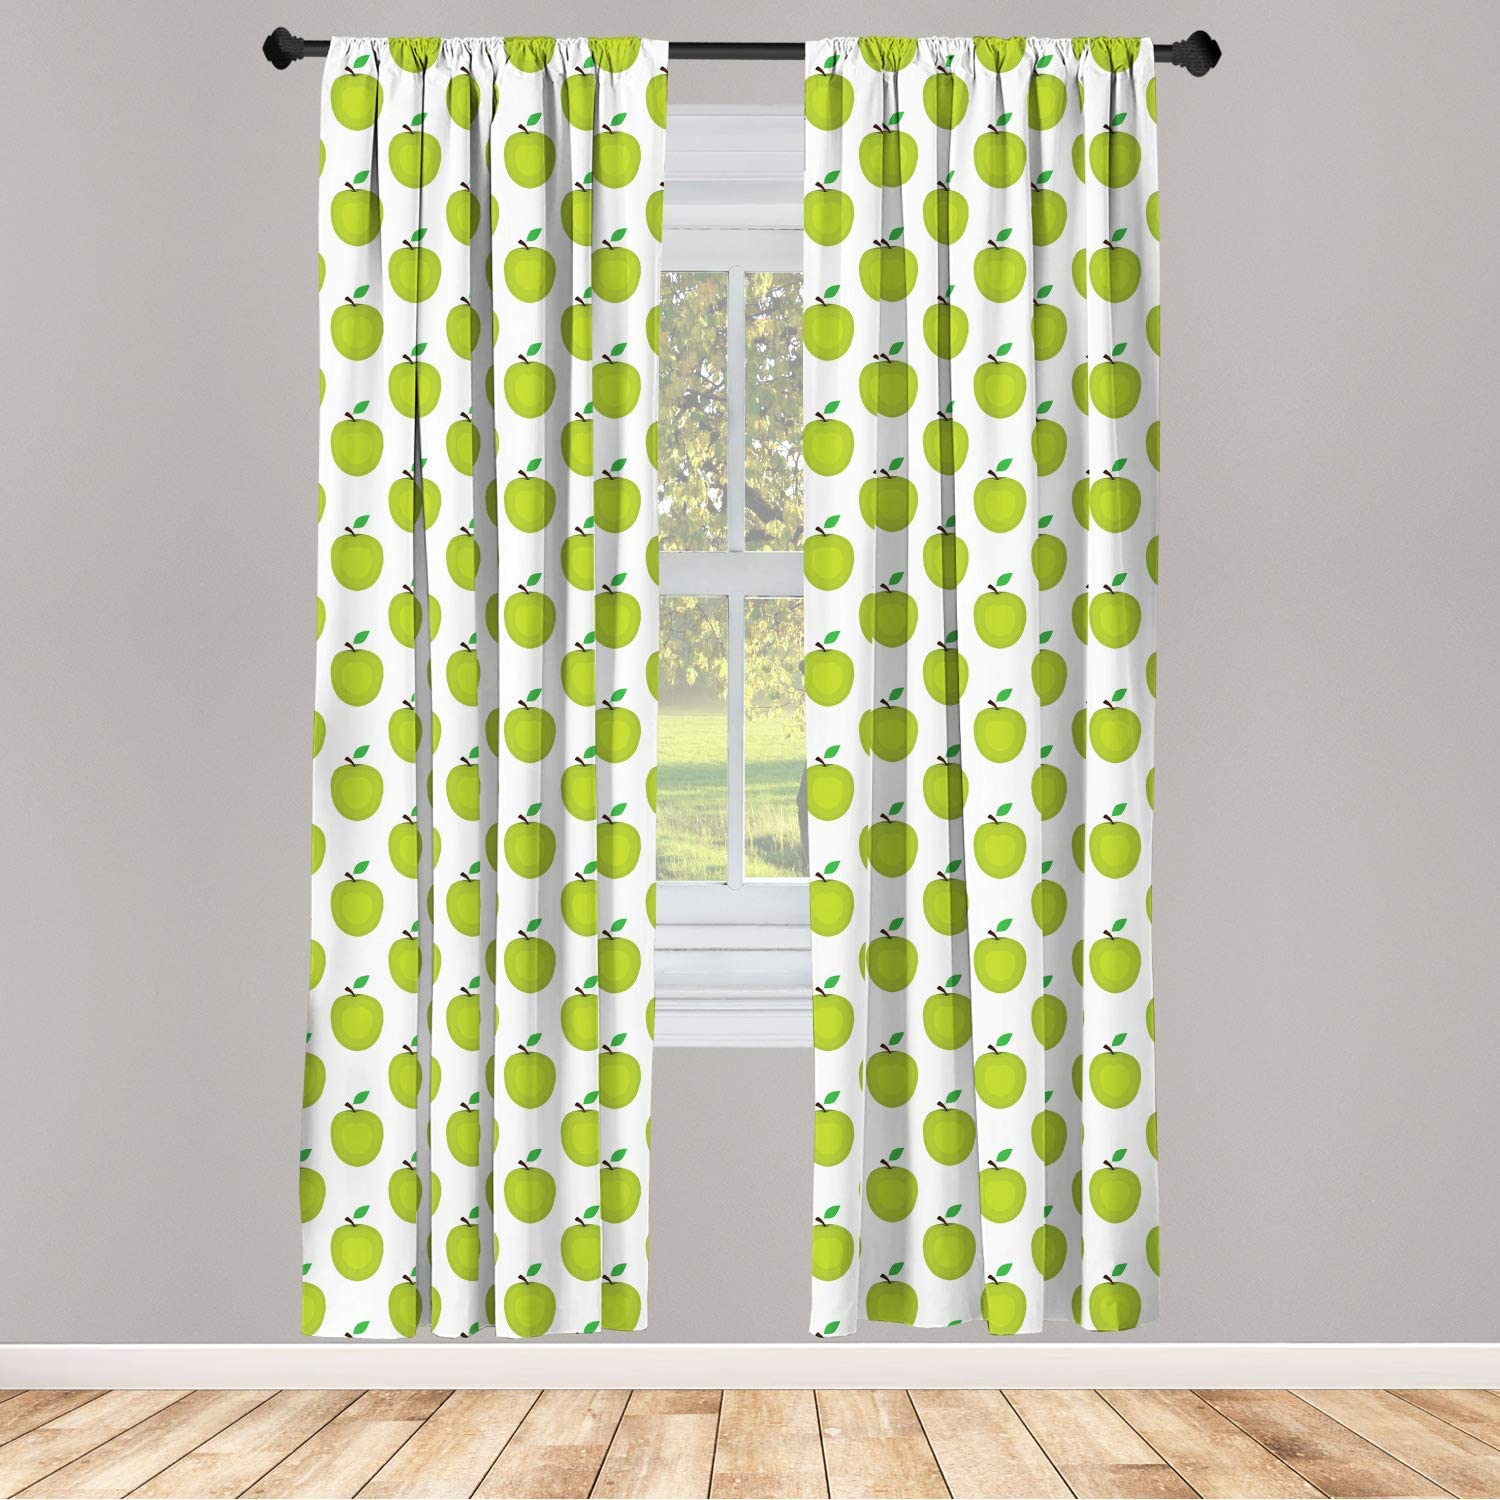 Lunarable Fruits Curtains, Fresh and Ripe Green Apples Graphic Simple Design, Window Treatments 2 Panel Set for Living Room Bedroom Decor, 56